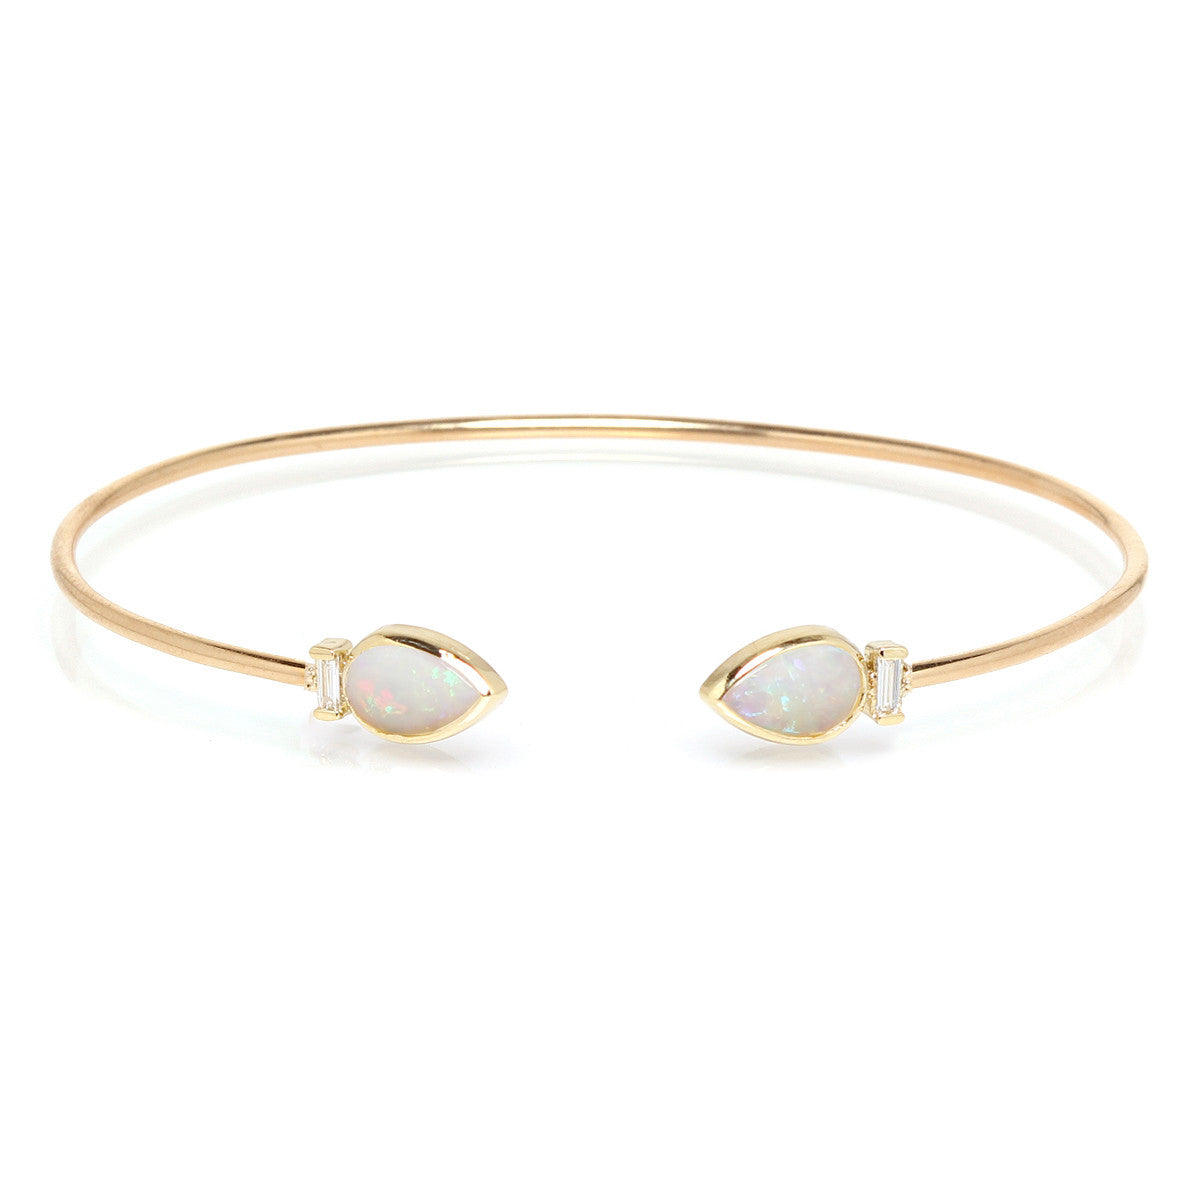 white other bracelet thin bangles diamond options street bracelets collections product bond bangle image bsjc gold available jewellers